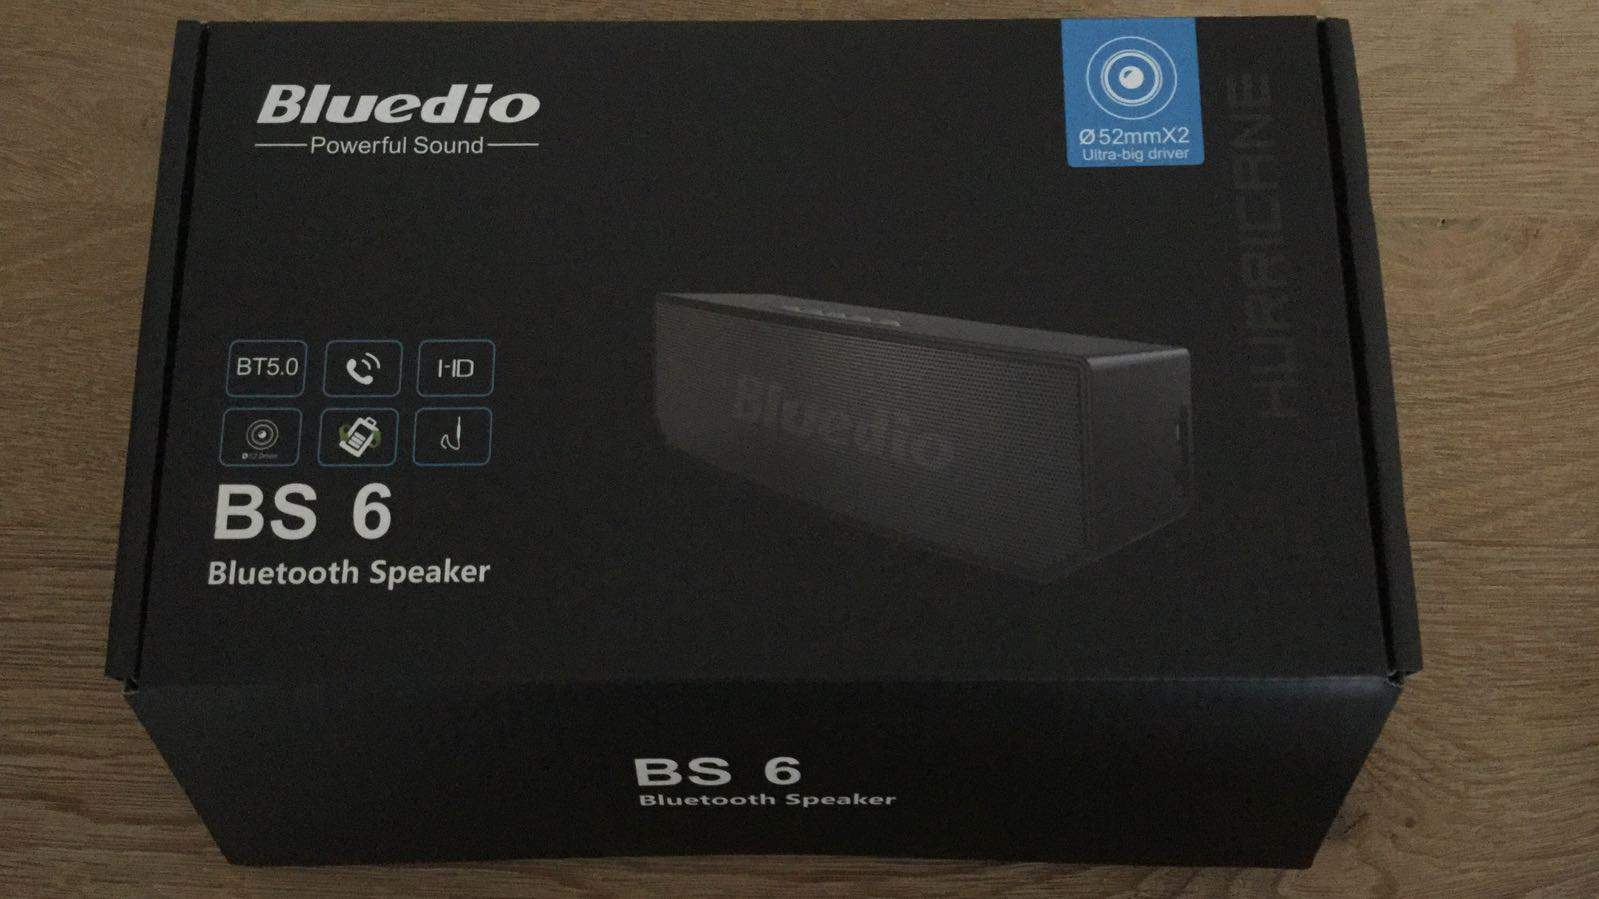 Bluedio BS 6 Box